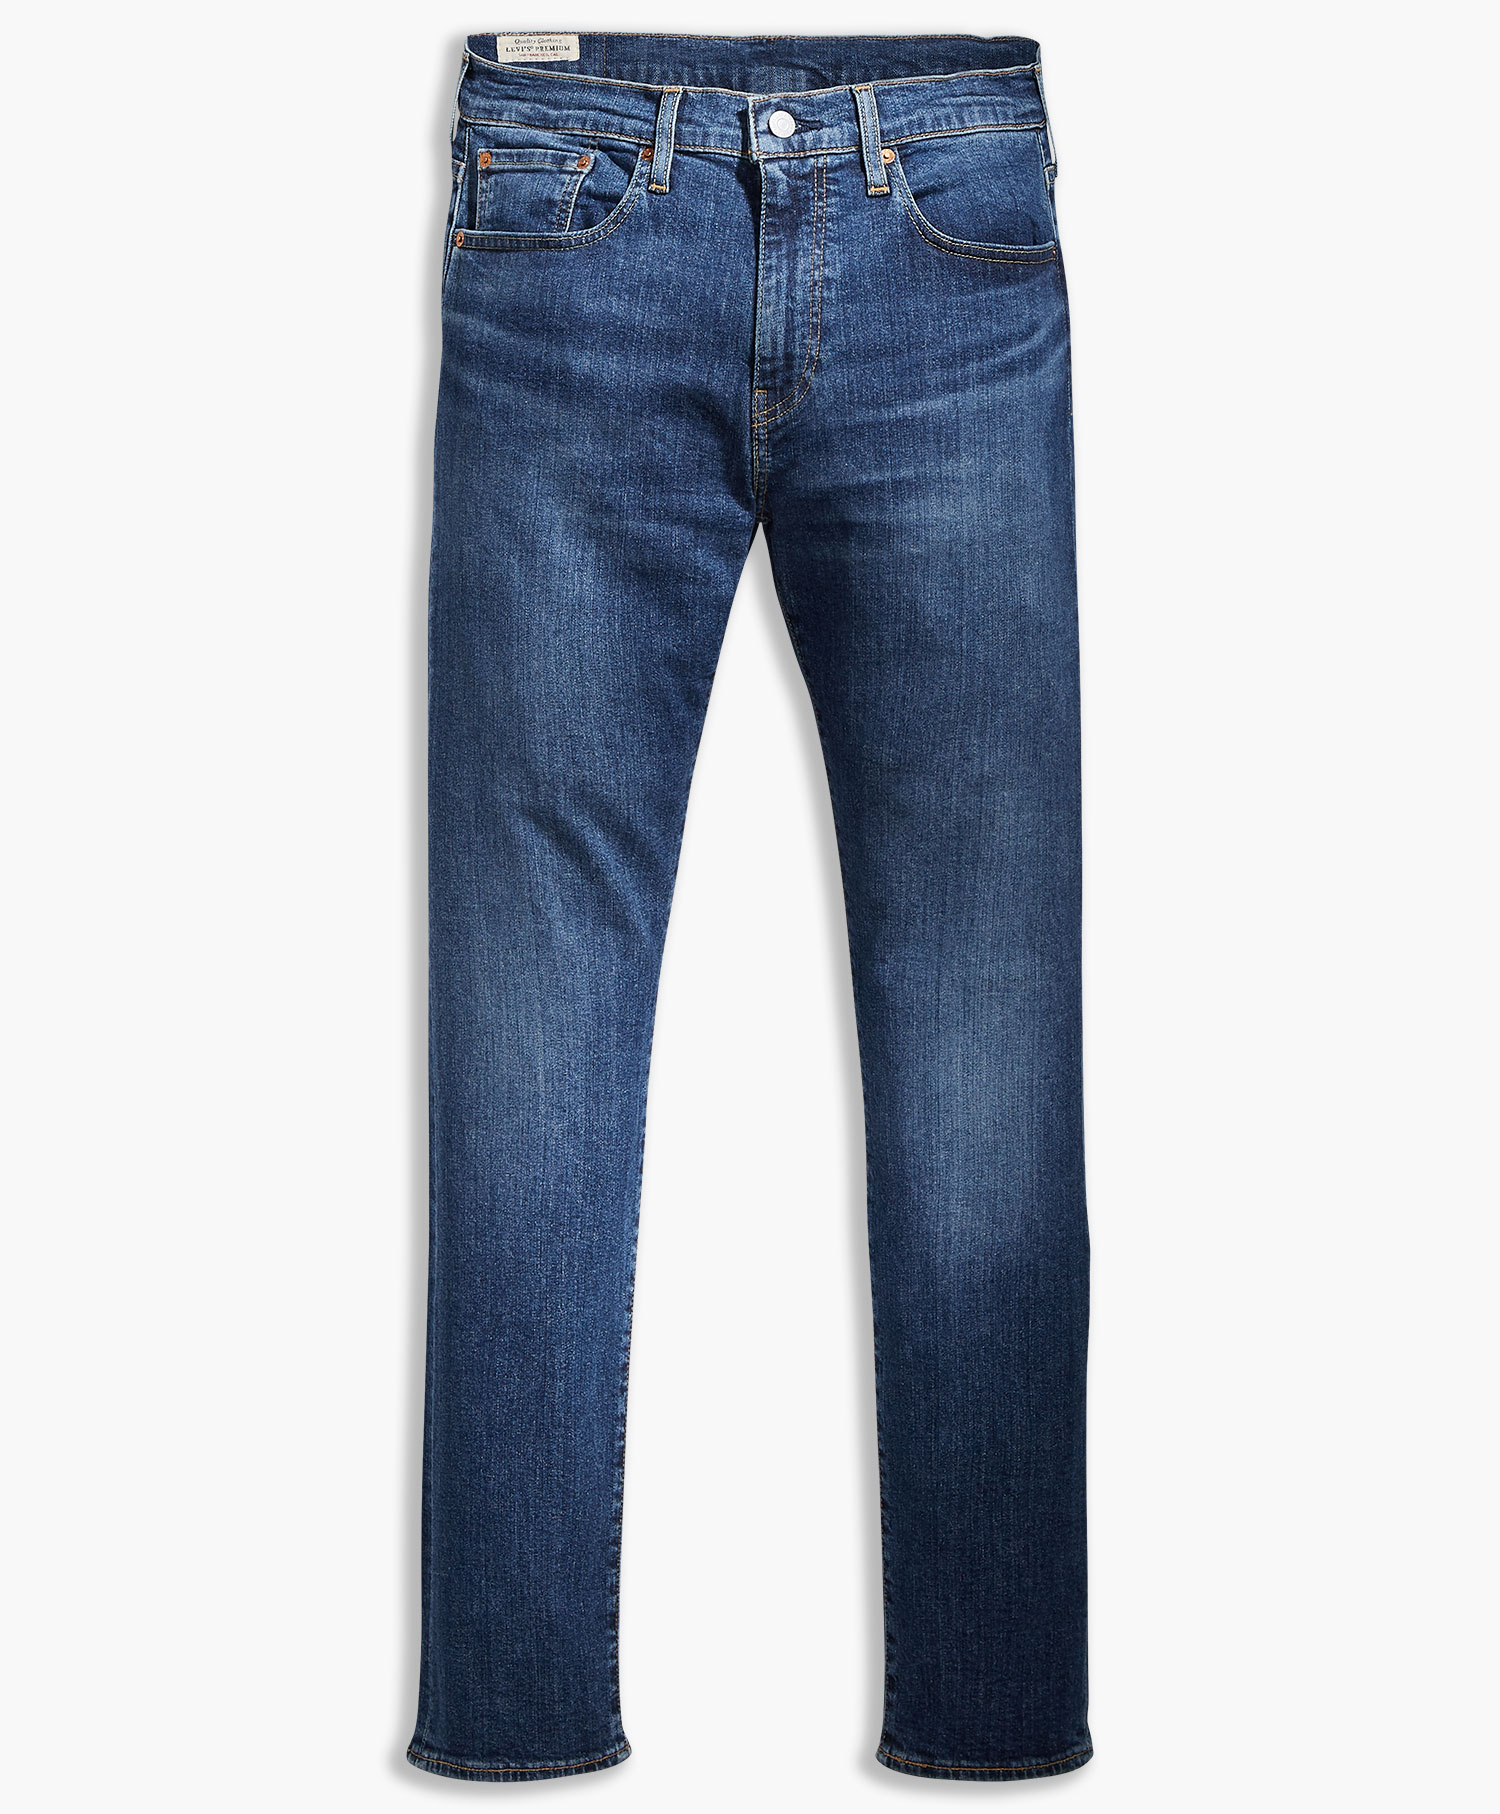 Levis 502 Taper Jeans